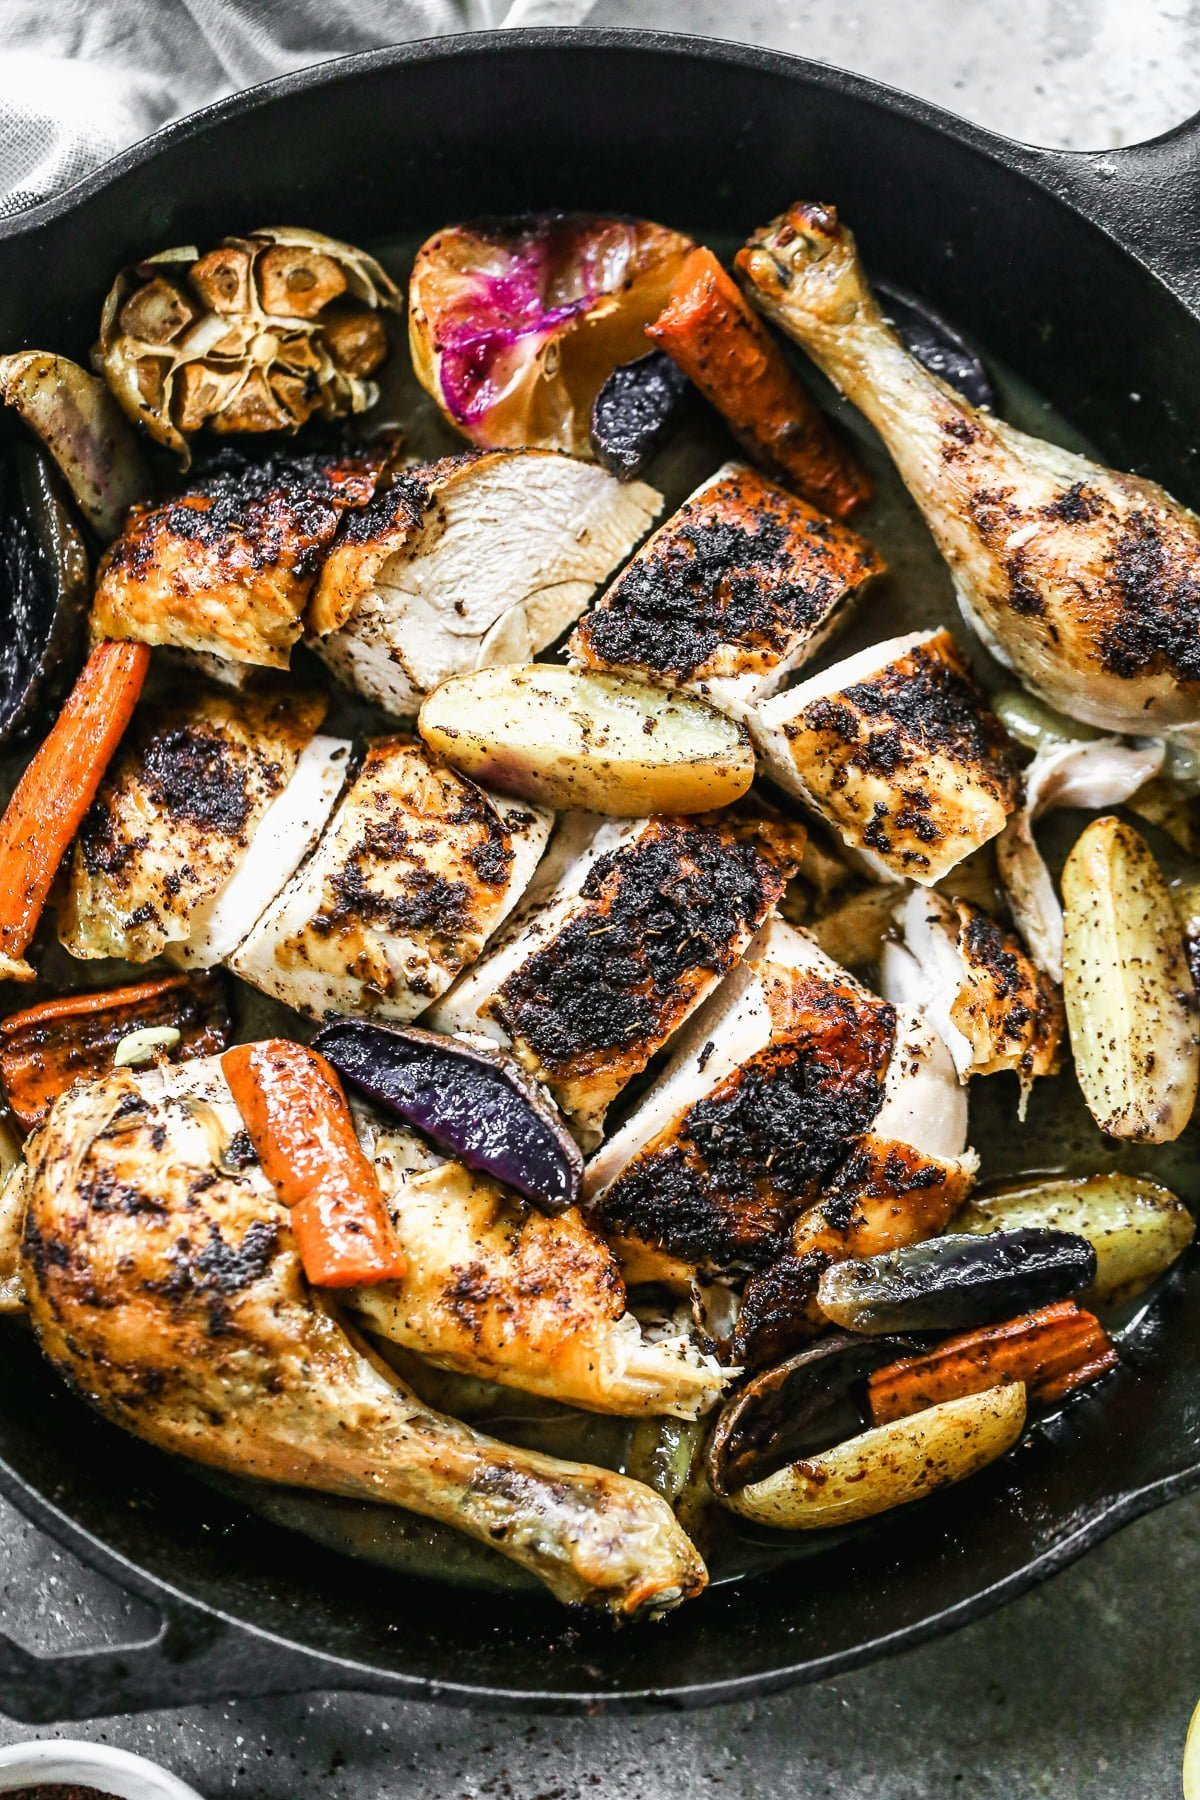 With a crispy sumac and garlic crusted skin and a juicy lemon-kissed interior, our Cast Iron Roast Chicken is not only perfectly delicious but the perfect fall dinner. Alongside the chicken, we scatter fingerling potatoes and whole carrots to sop up every bit of salty juice that drips to the bottom of the pan.